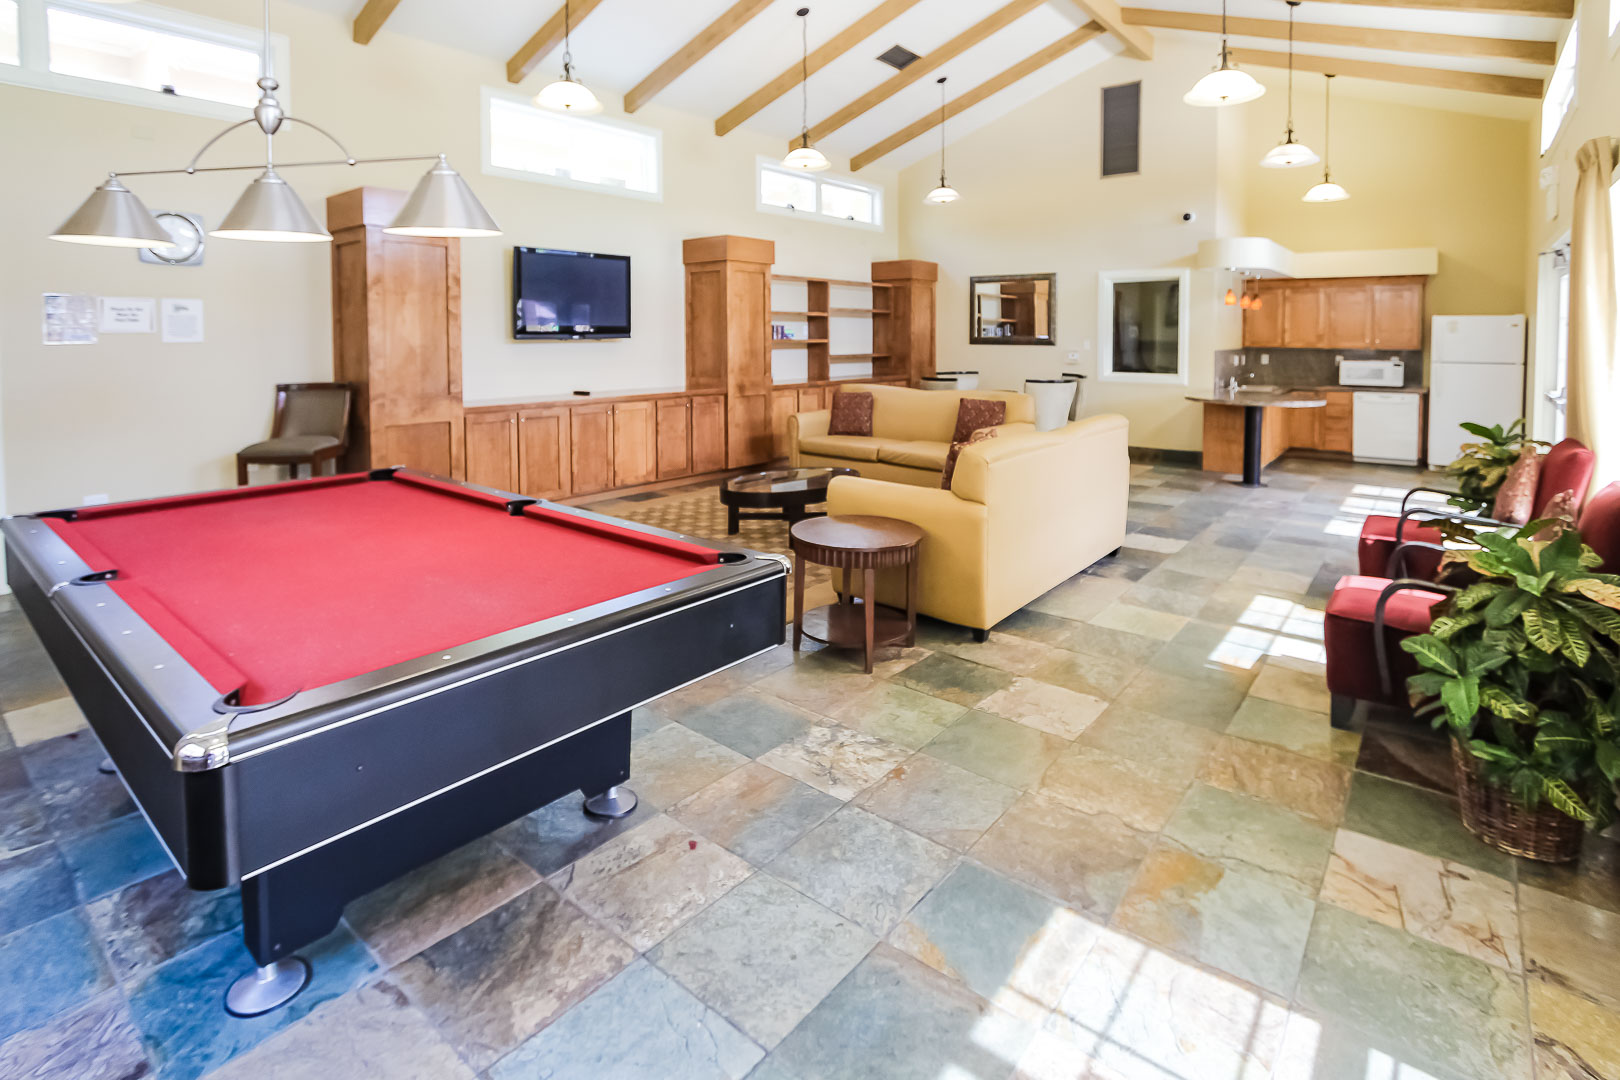 A community area with a pool table at VRI's Winner Circle Resort in California.